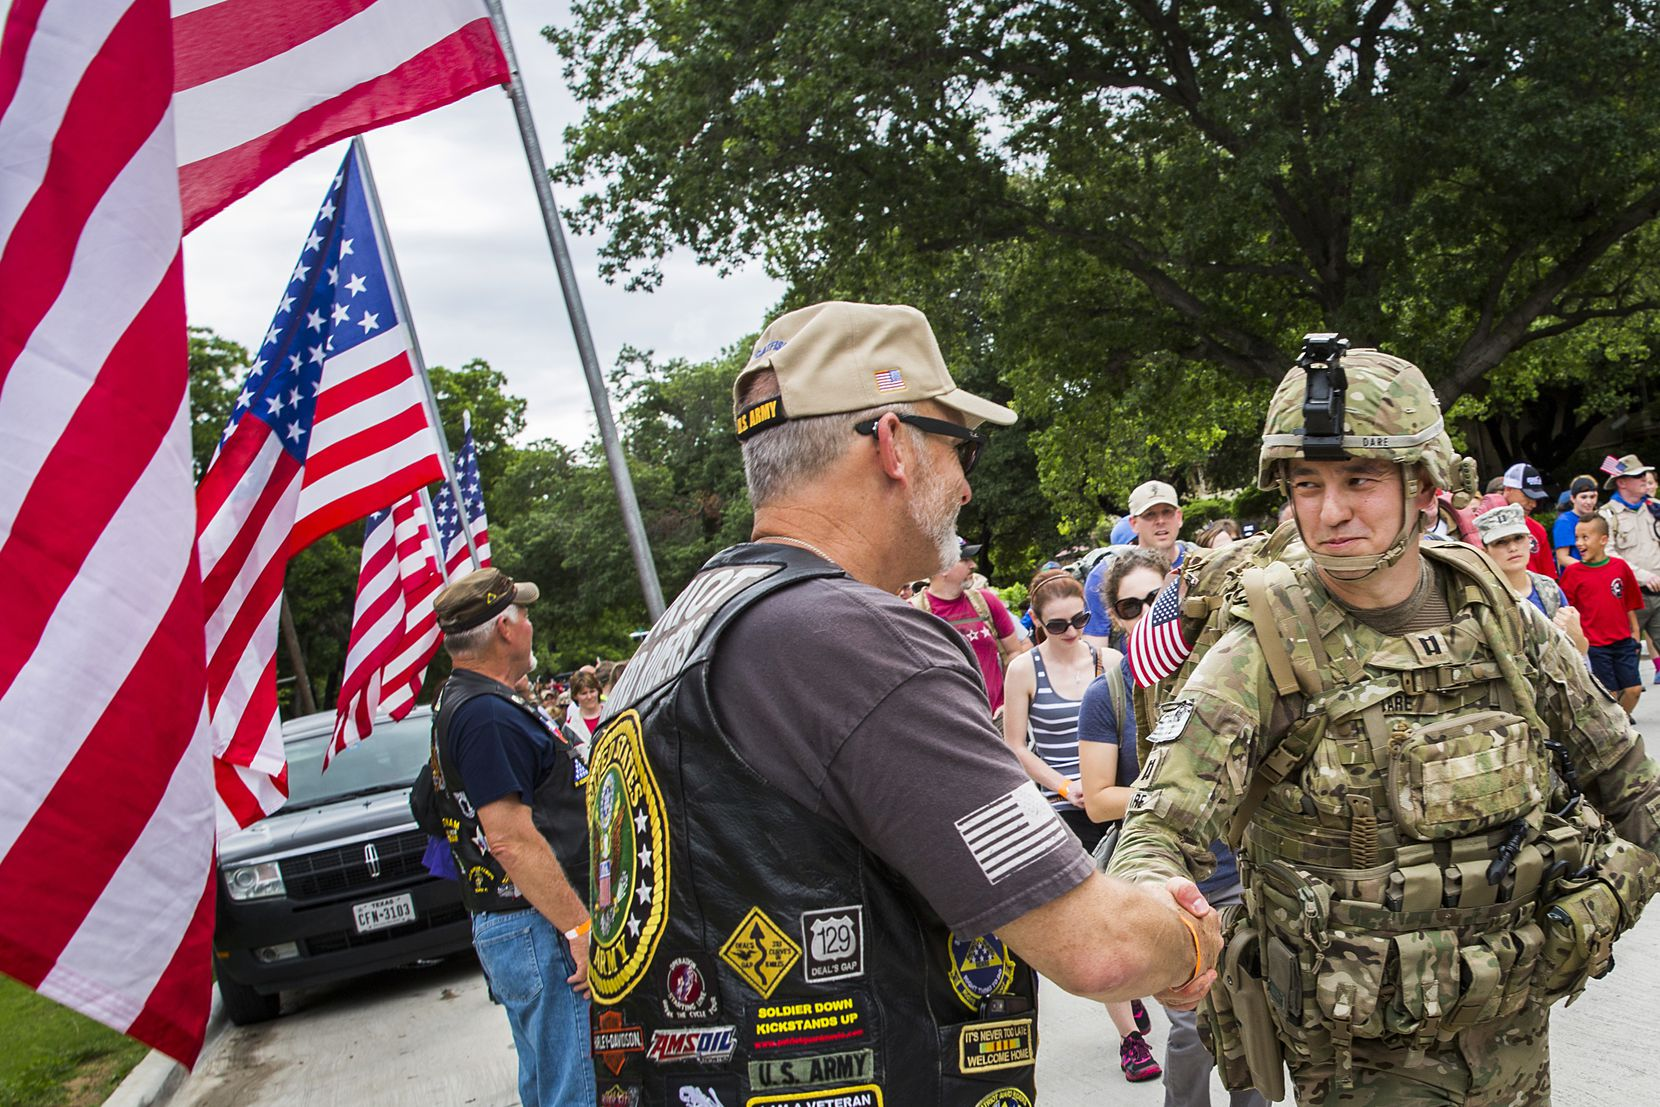 Iraq war veteran Glen Dare of McKinney (right) thanks members of the Patriot Riders who formed a color guard at the start of a previous Carry the Load Dallas Memorial March.